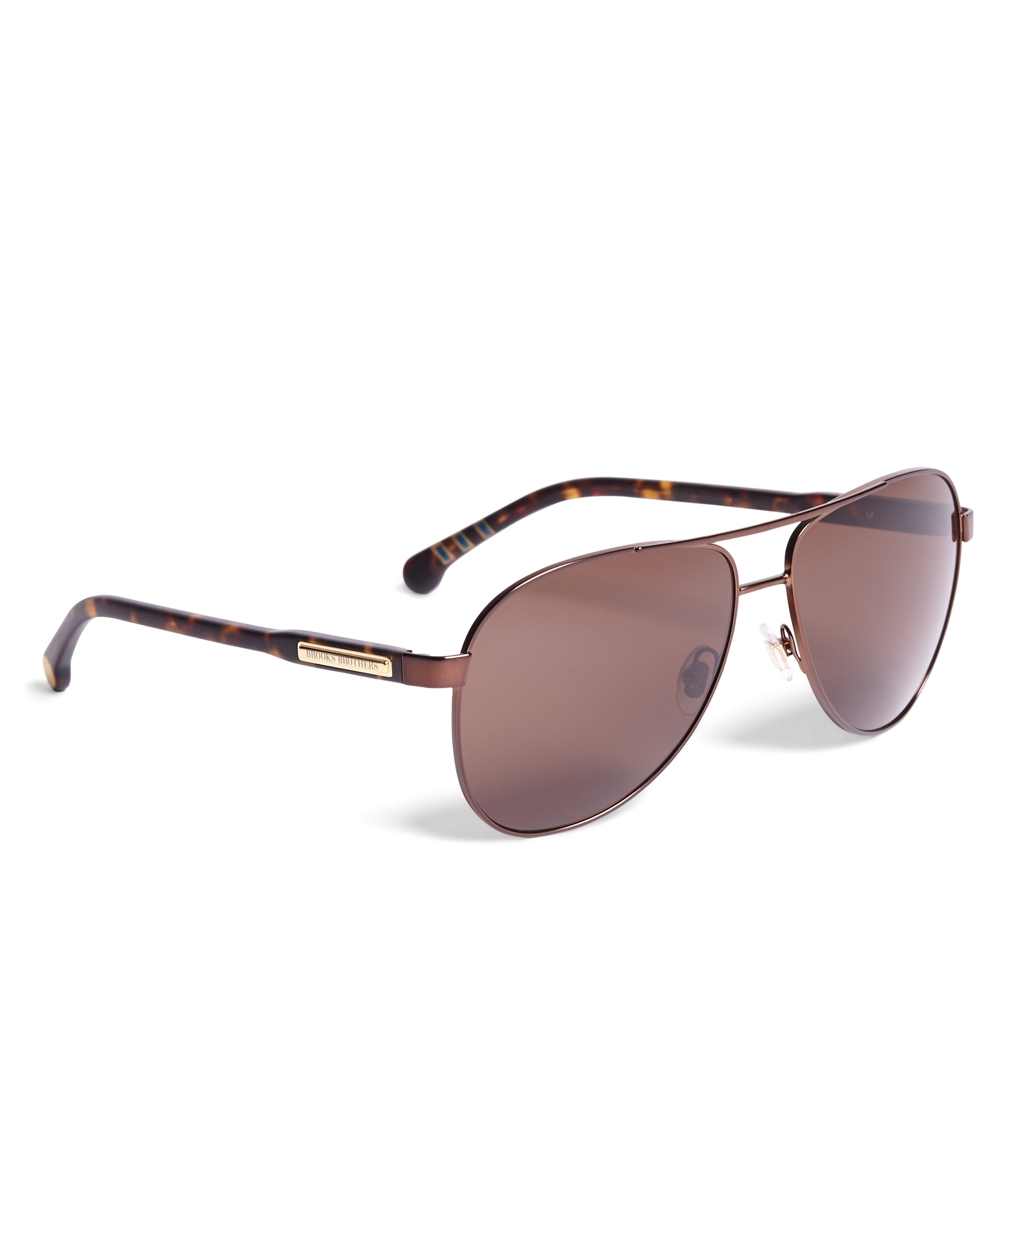 a31f84ee53b8 Dickies Aviator Sunglasses Review. Dickies® Leather - wrapped Aviator  Sunglasses - 181075 ...